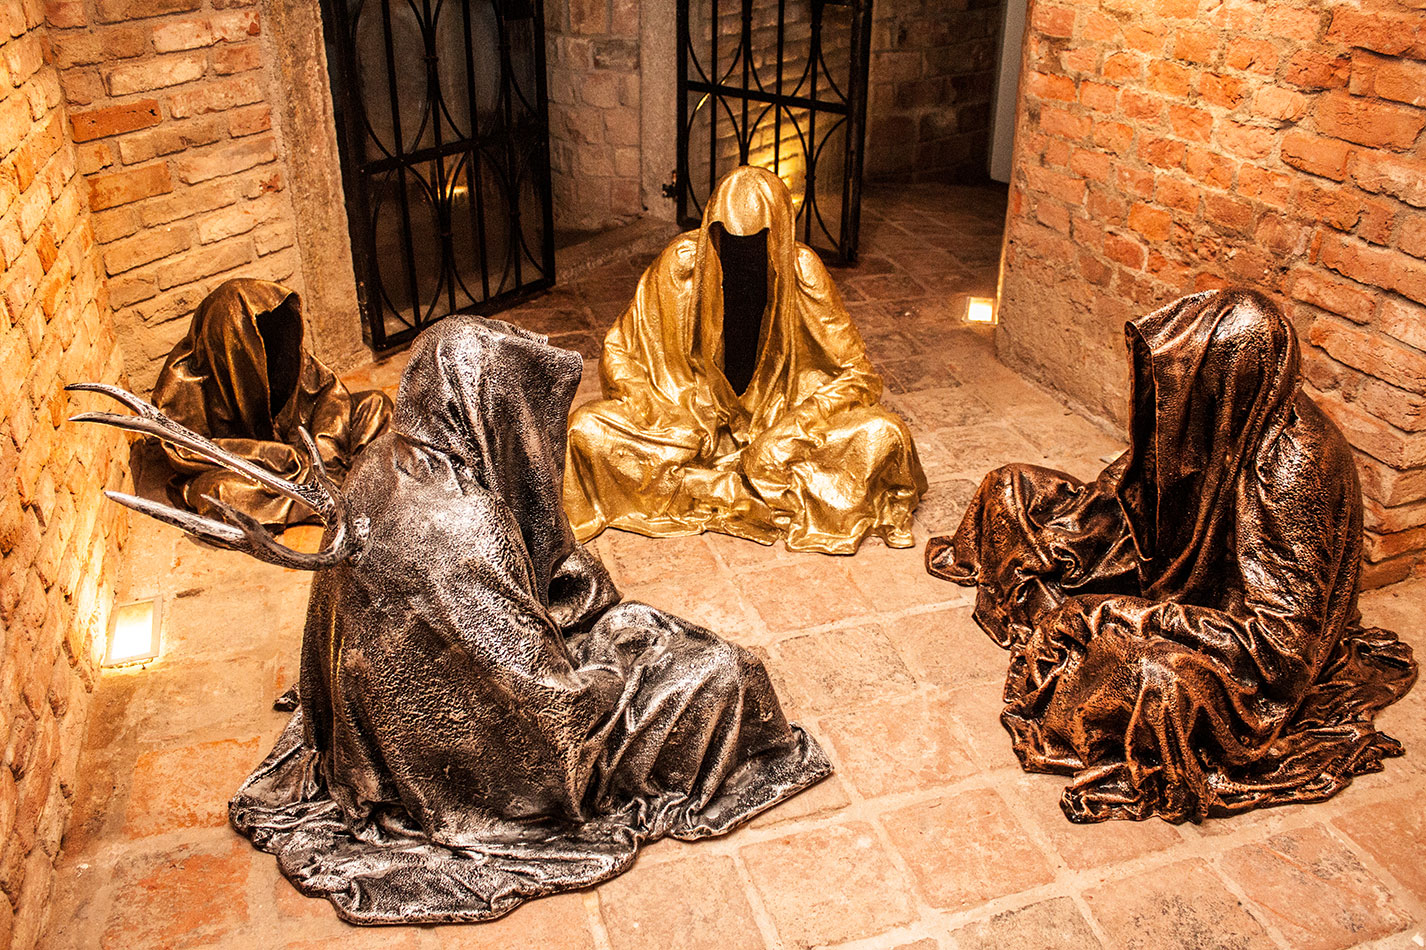 guardians-of-time-sculptor-manfred-kielnhofer-contemporary-modern-fine-arts-antique-sculpture-sttue-art-design-2529